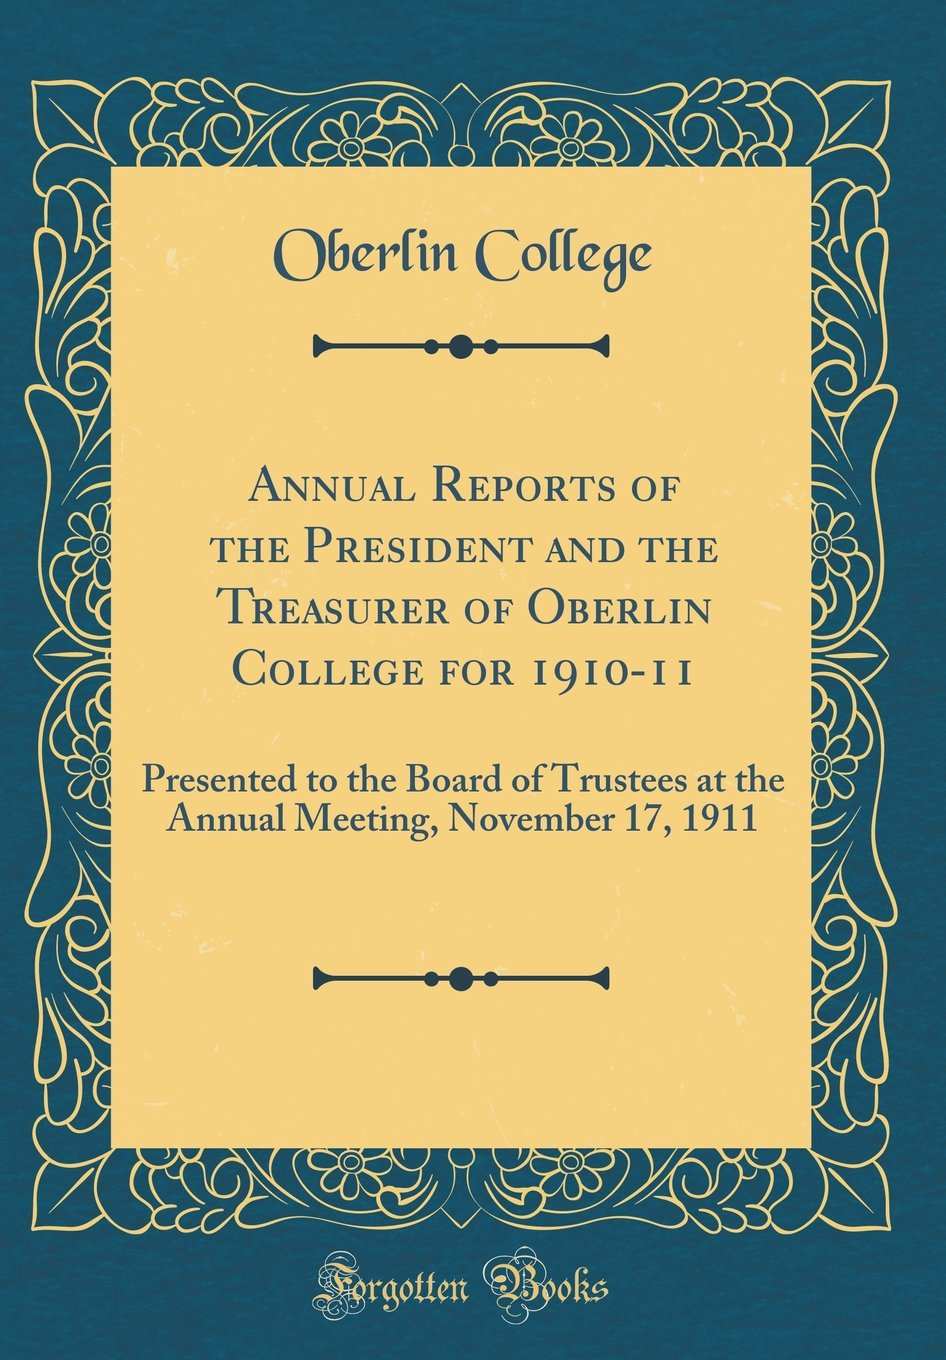 Annual Reports of the President and the Treasurer of Oberlin College for 1910-11: Presented to the Board of Trustees at the Annual Meeting, November 17, 1911 (Classic Reprint) PDF